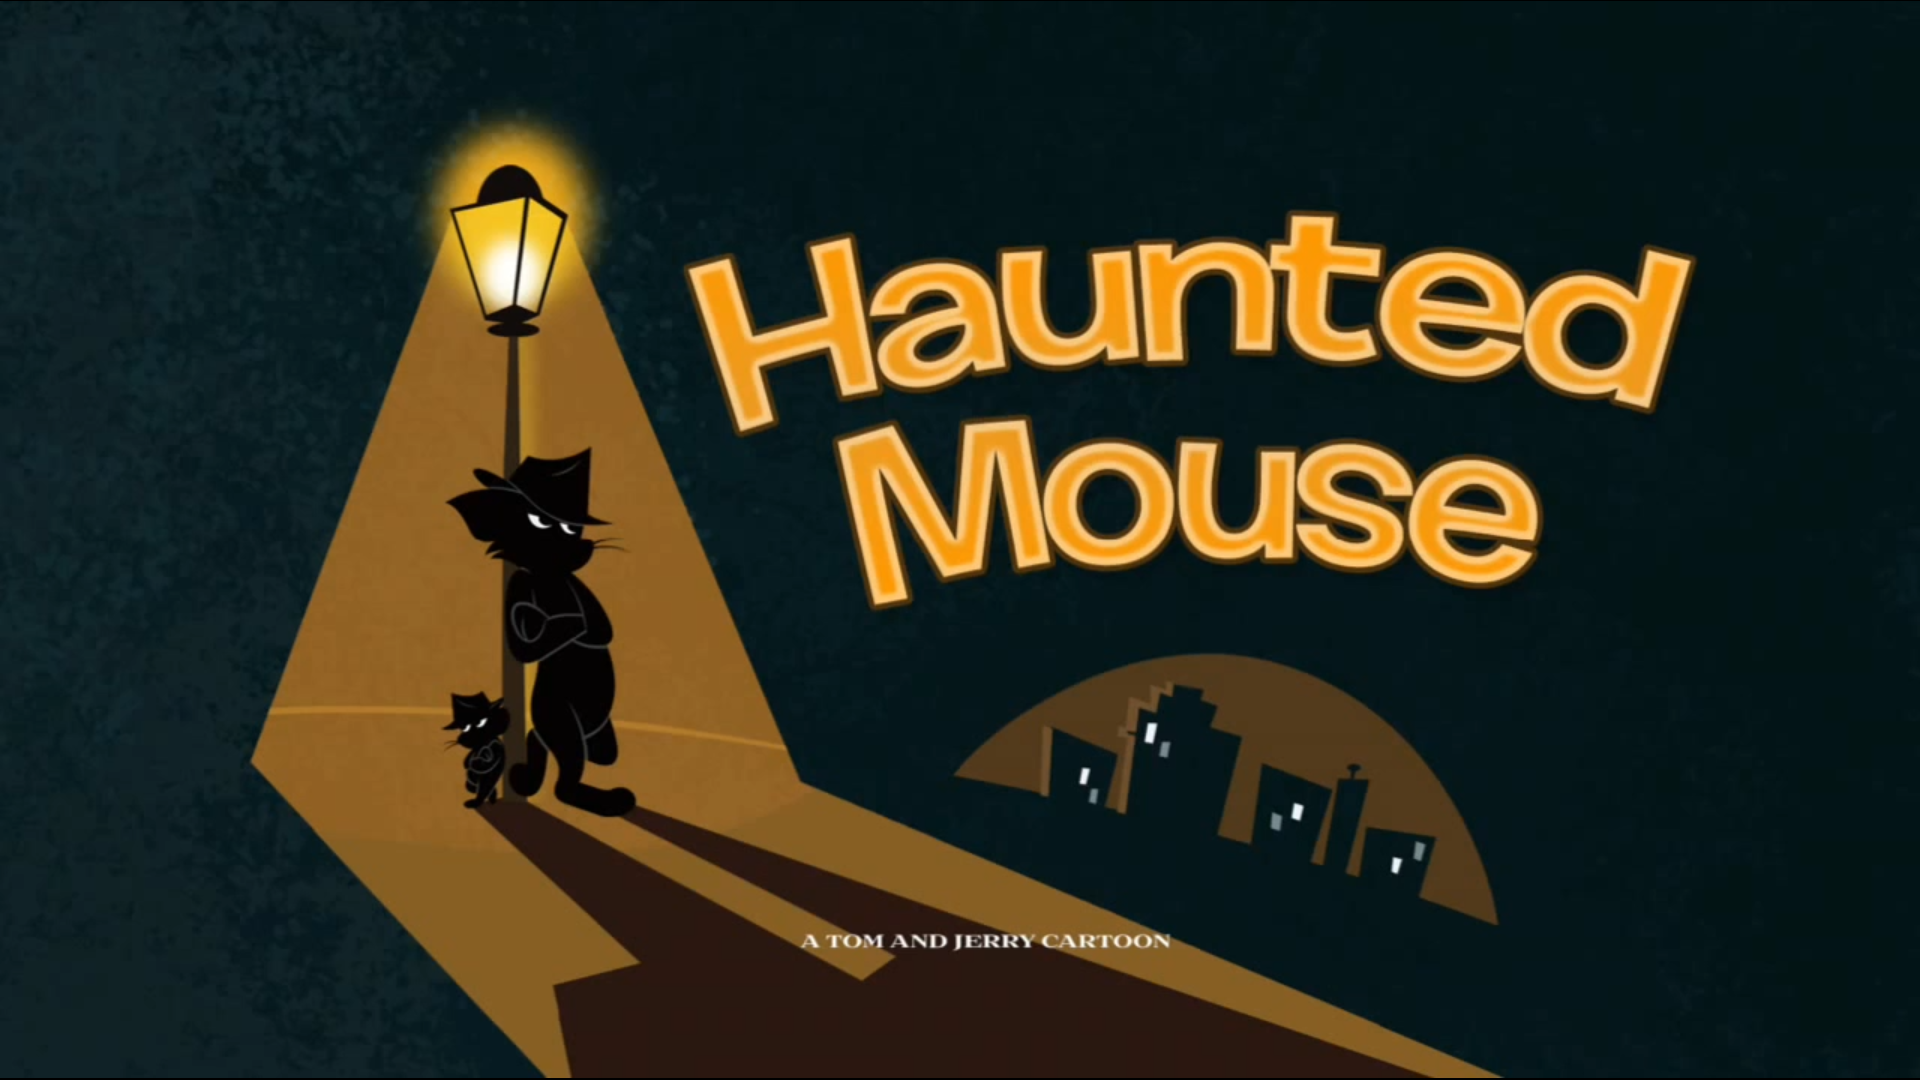 Haunted Mouse (The Tom and Jerry Show (2014) episode)